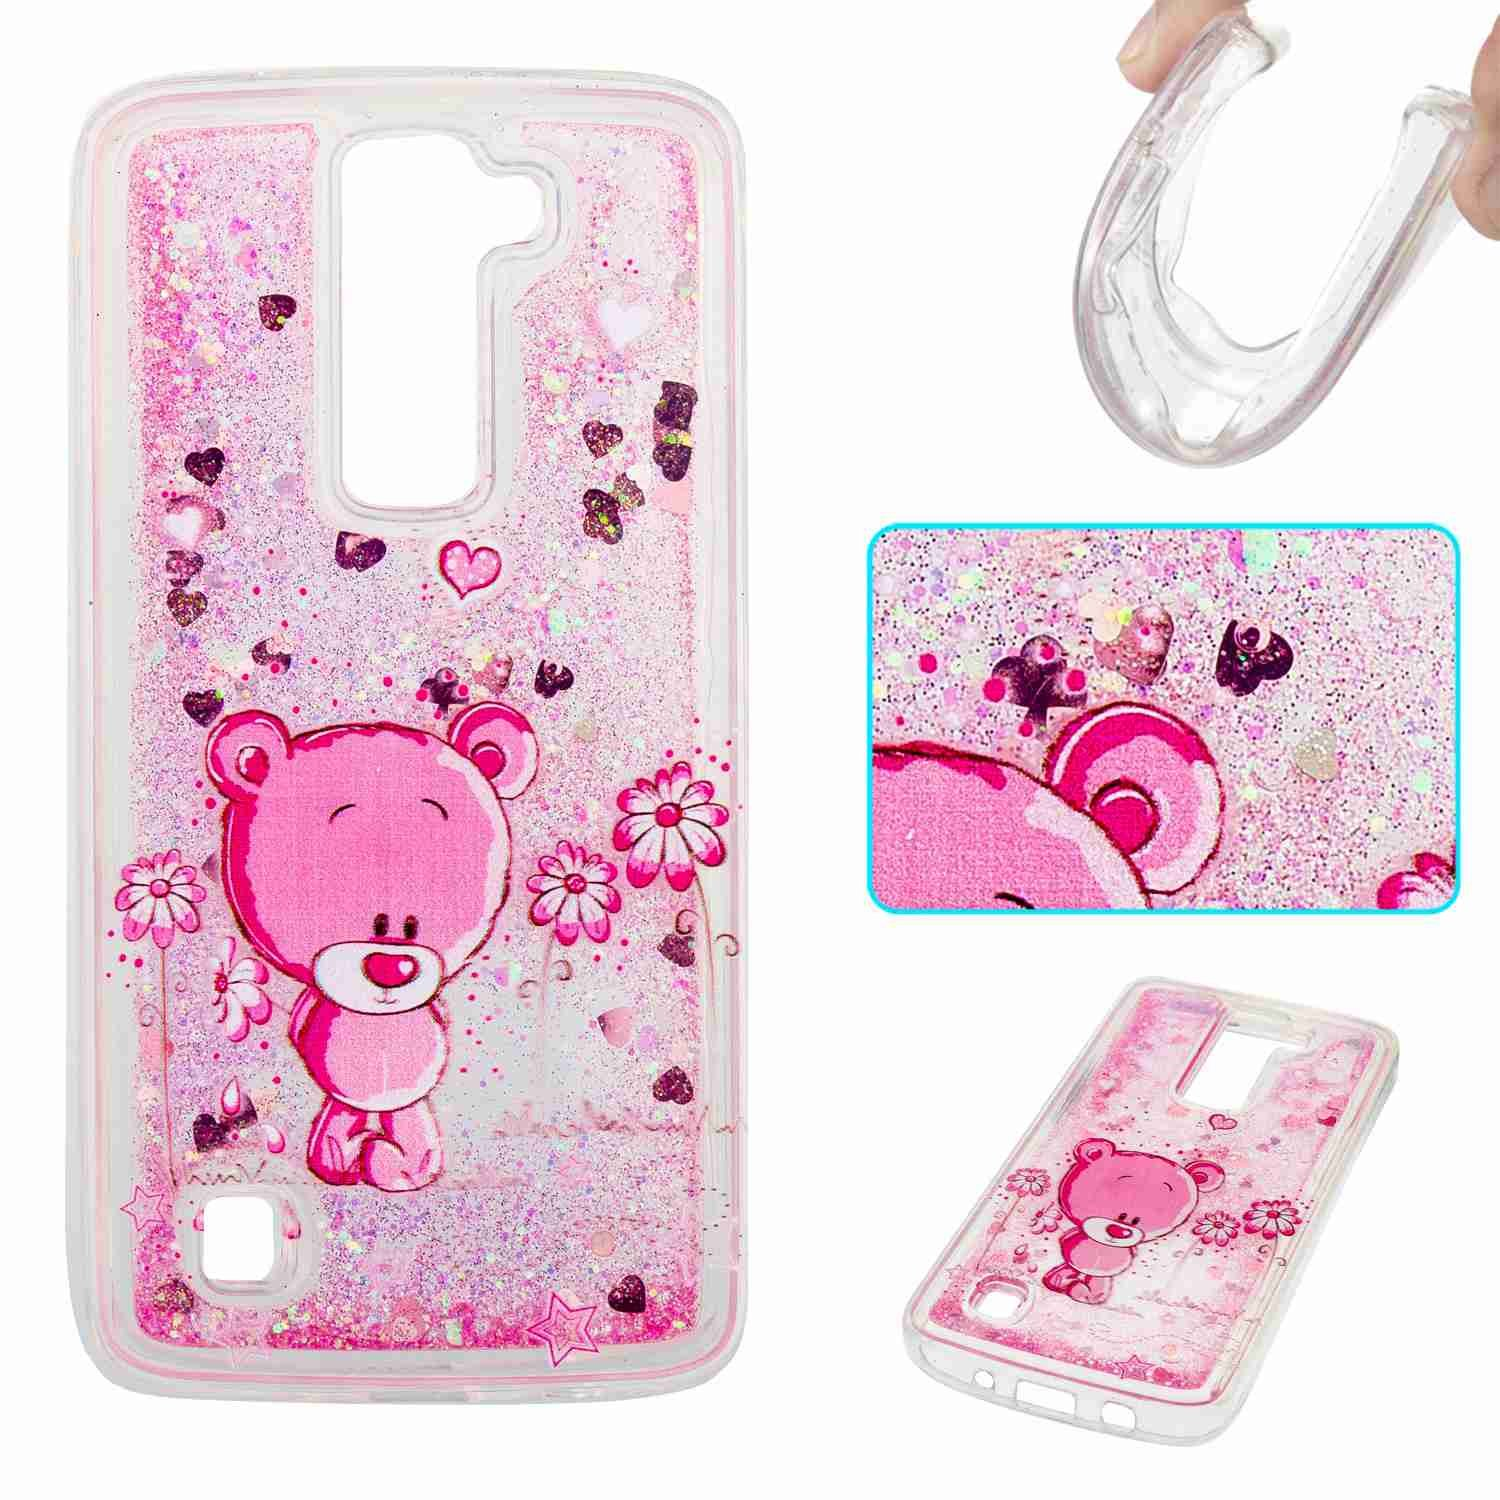 STENES LG K8 Case - 3D Creative Luxury Bling Glitter Sparkle Liquid Case Infused With Glitter and Stars Moving Quicksand Soft Case For LG Phoenix 2 /Escape 3 /LG K8 (2016) - Pink Sweet Heart Bear